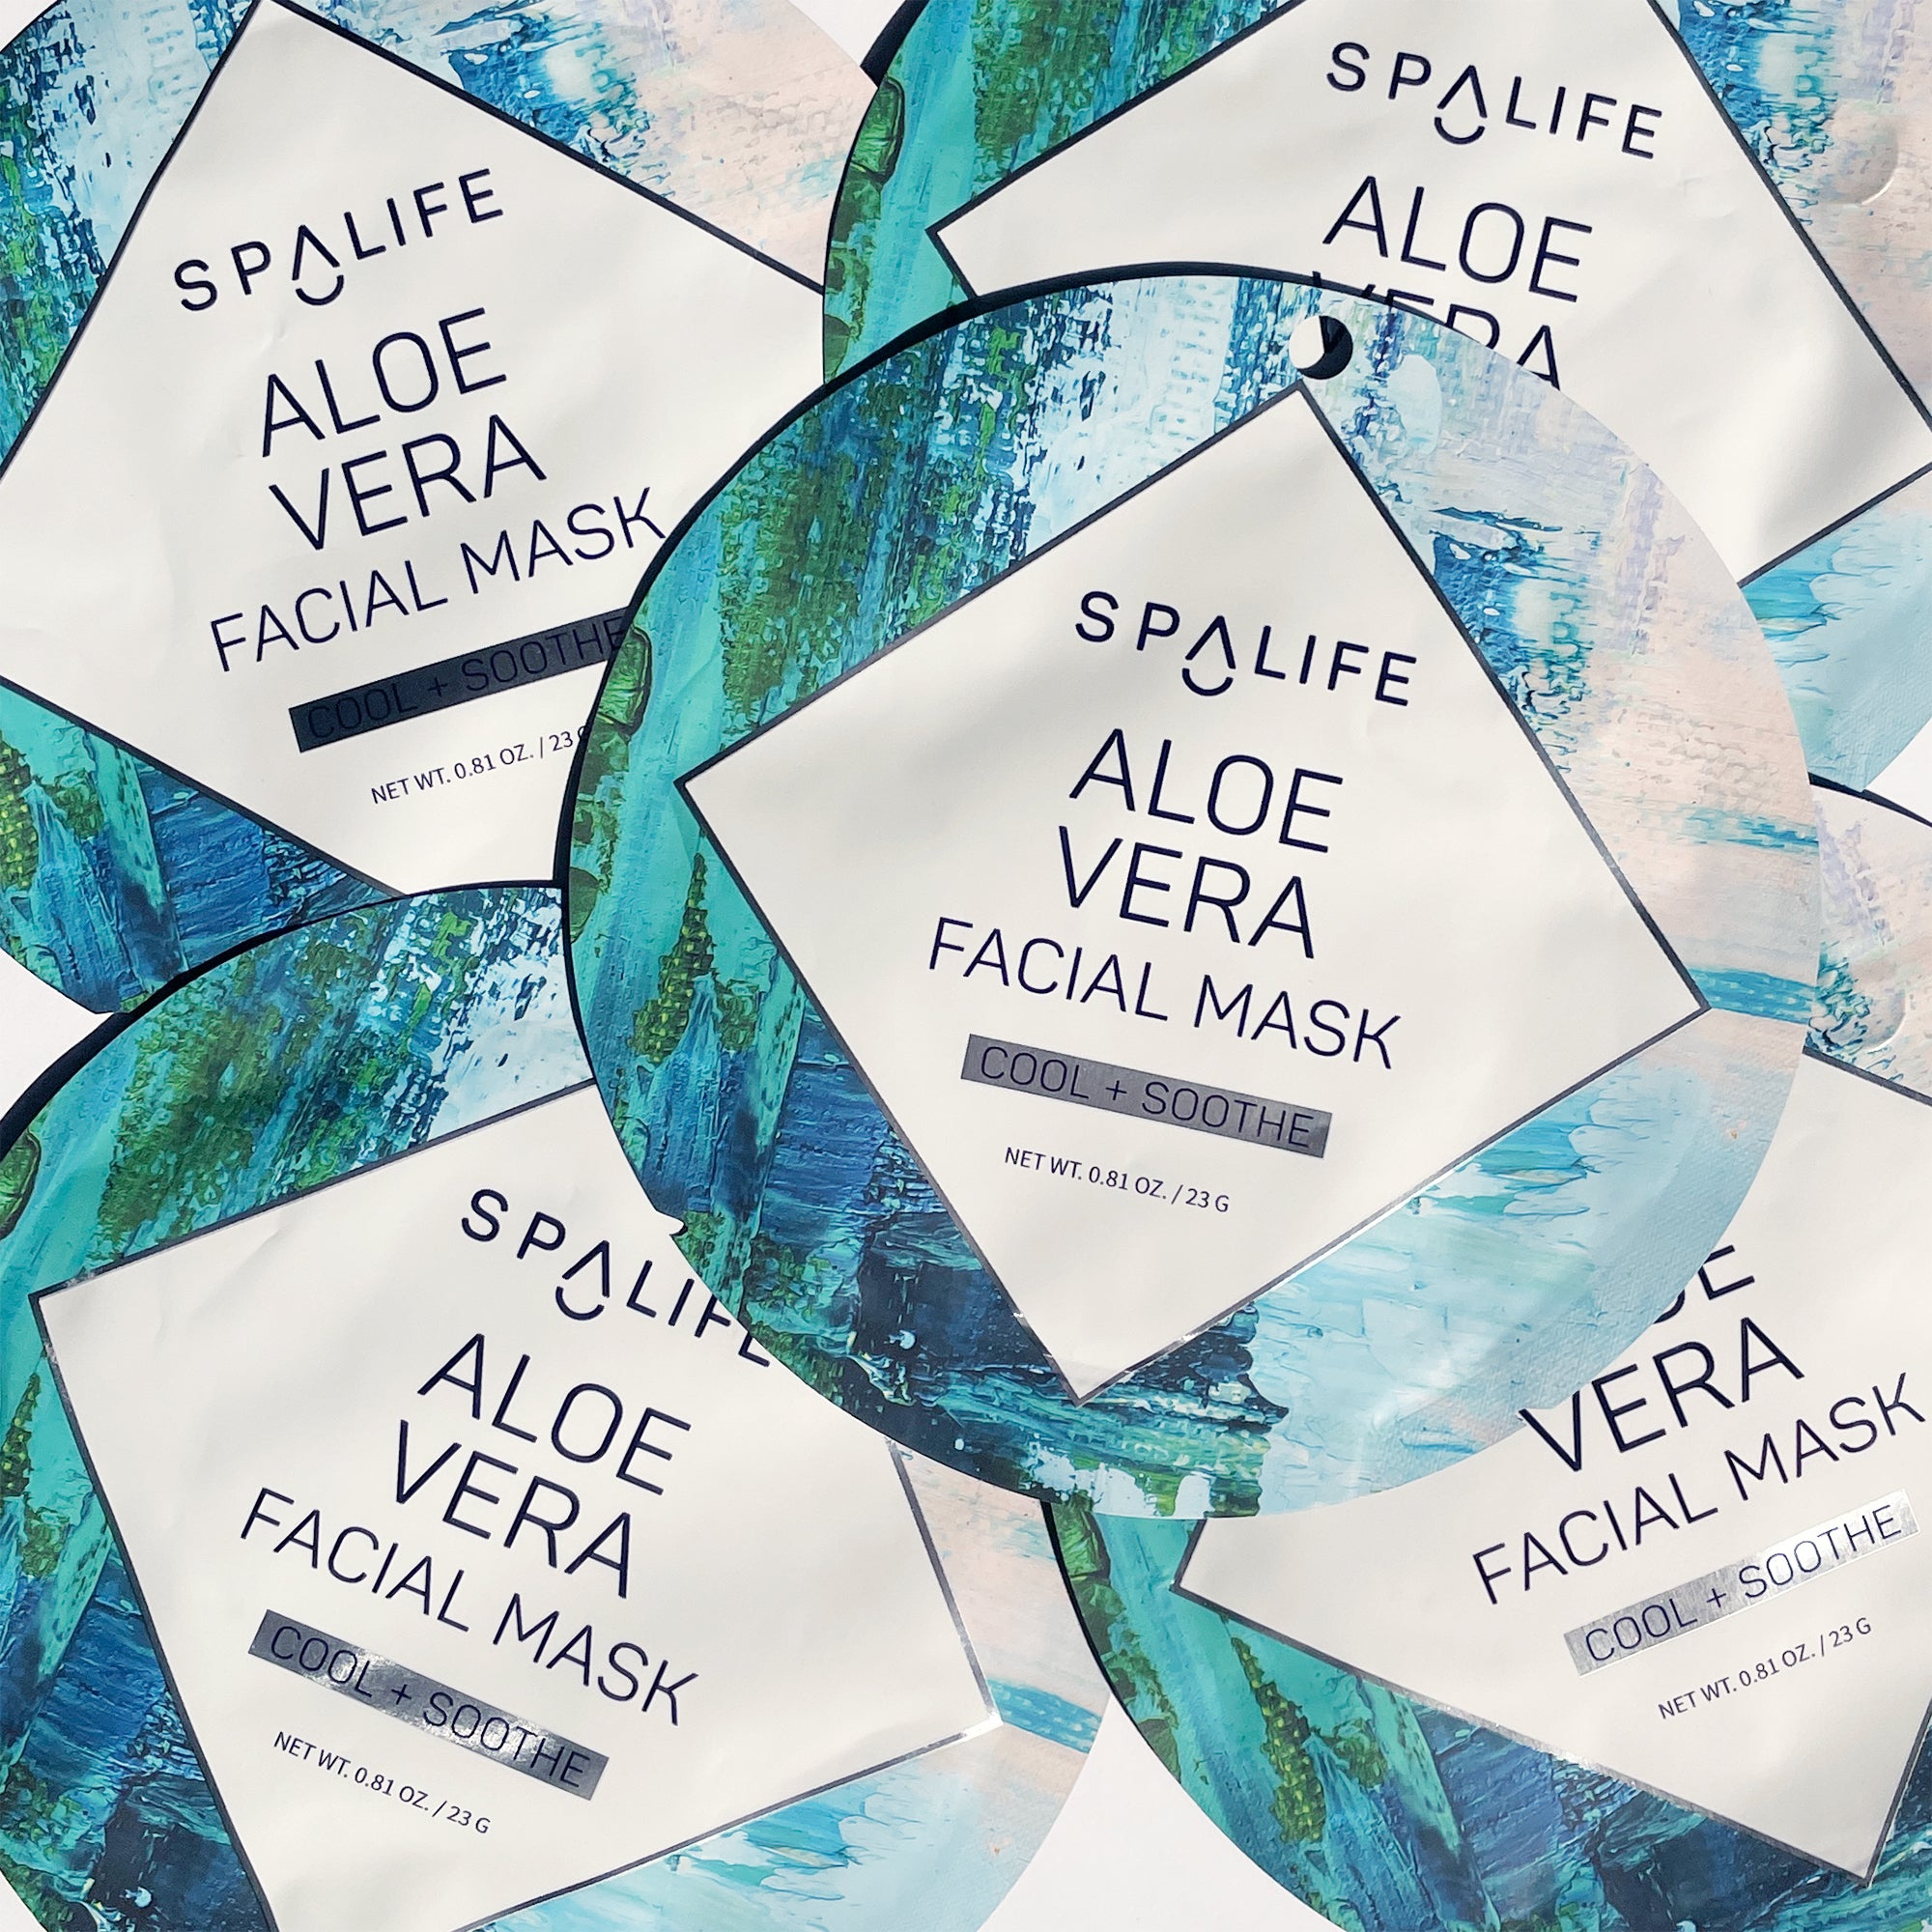 Aloe Vera Facial Mask - Revitalize & Renew